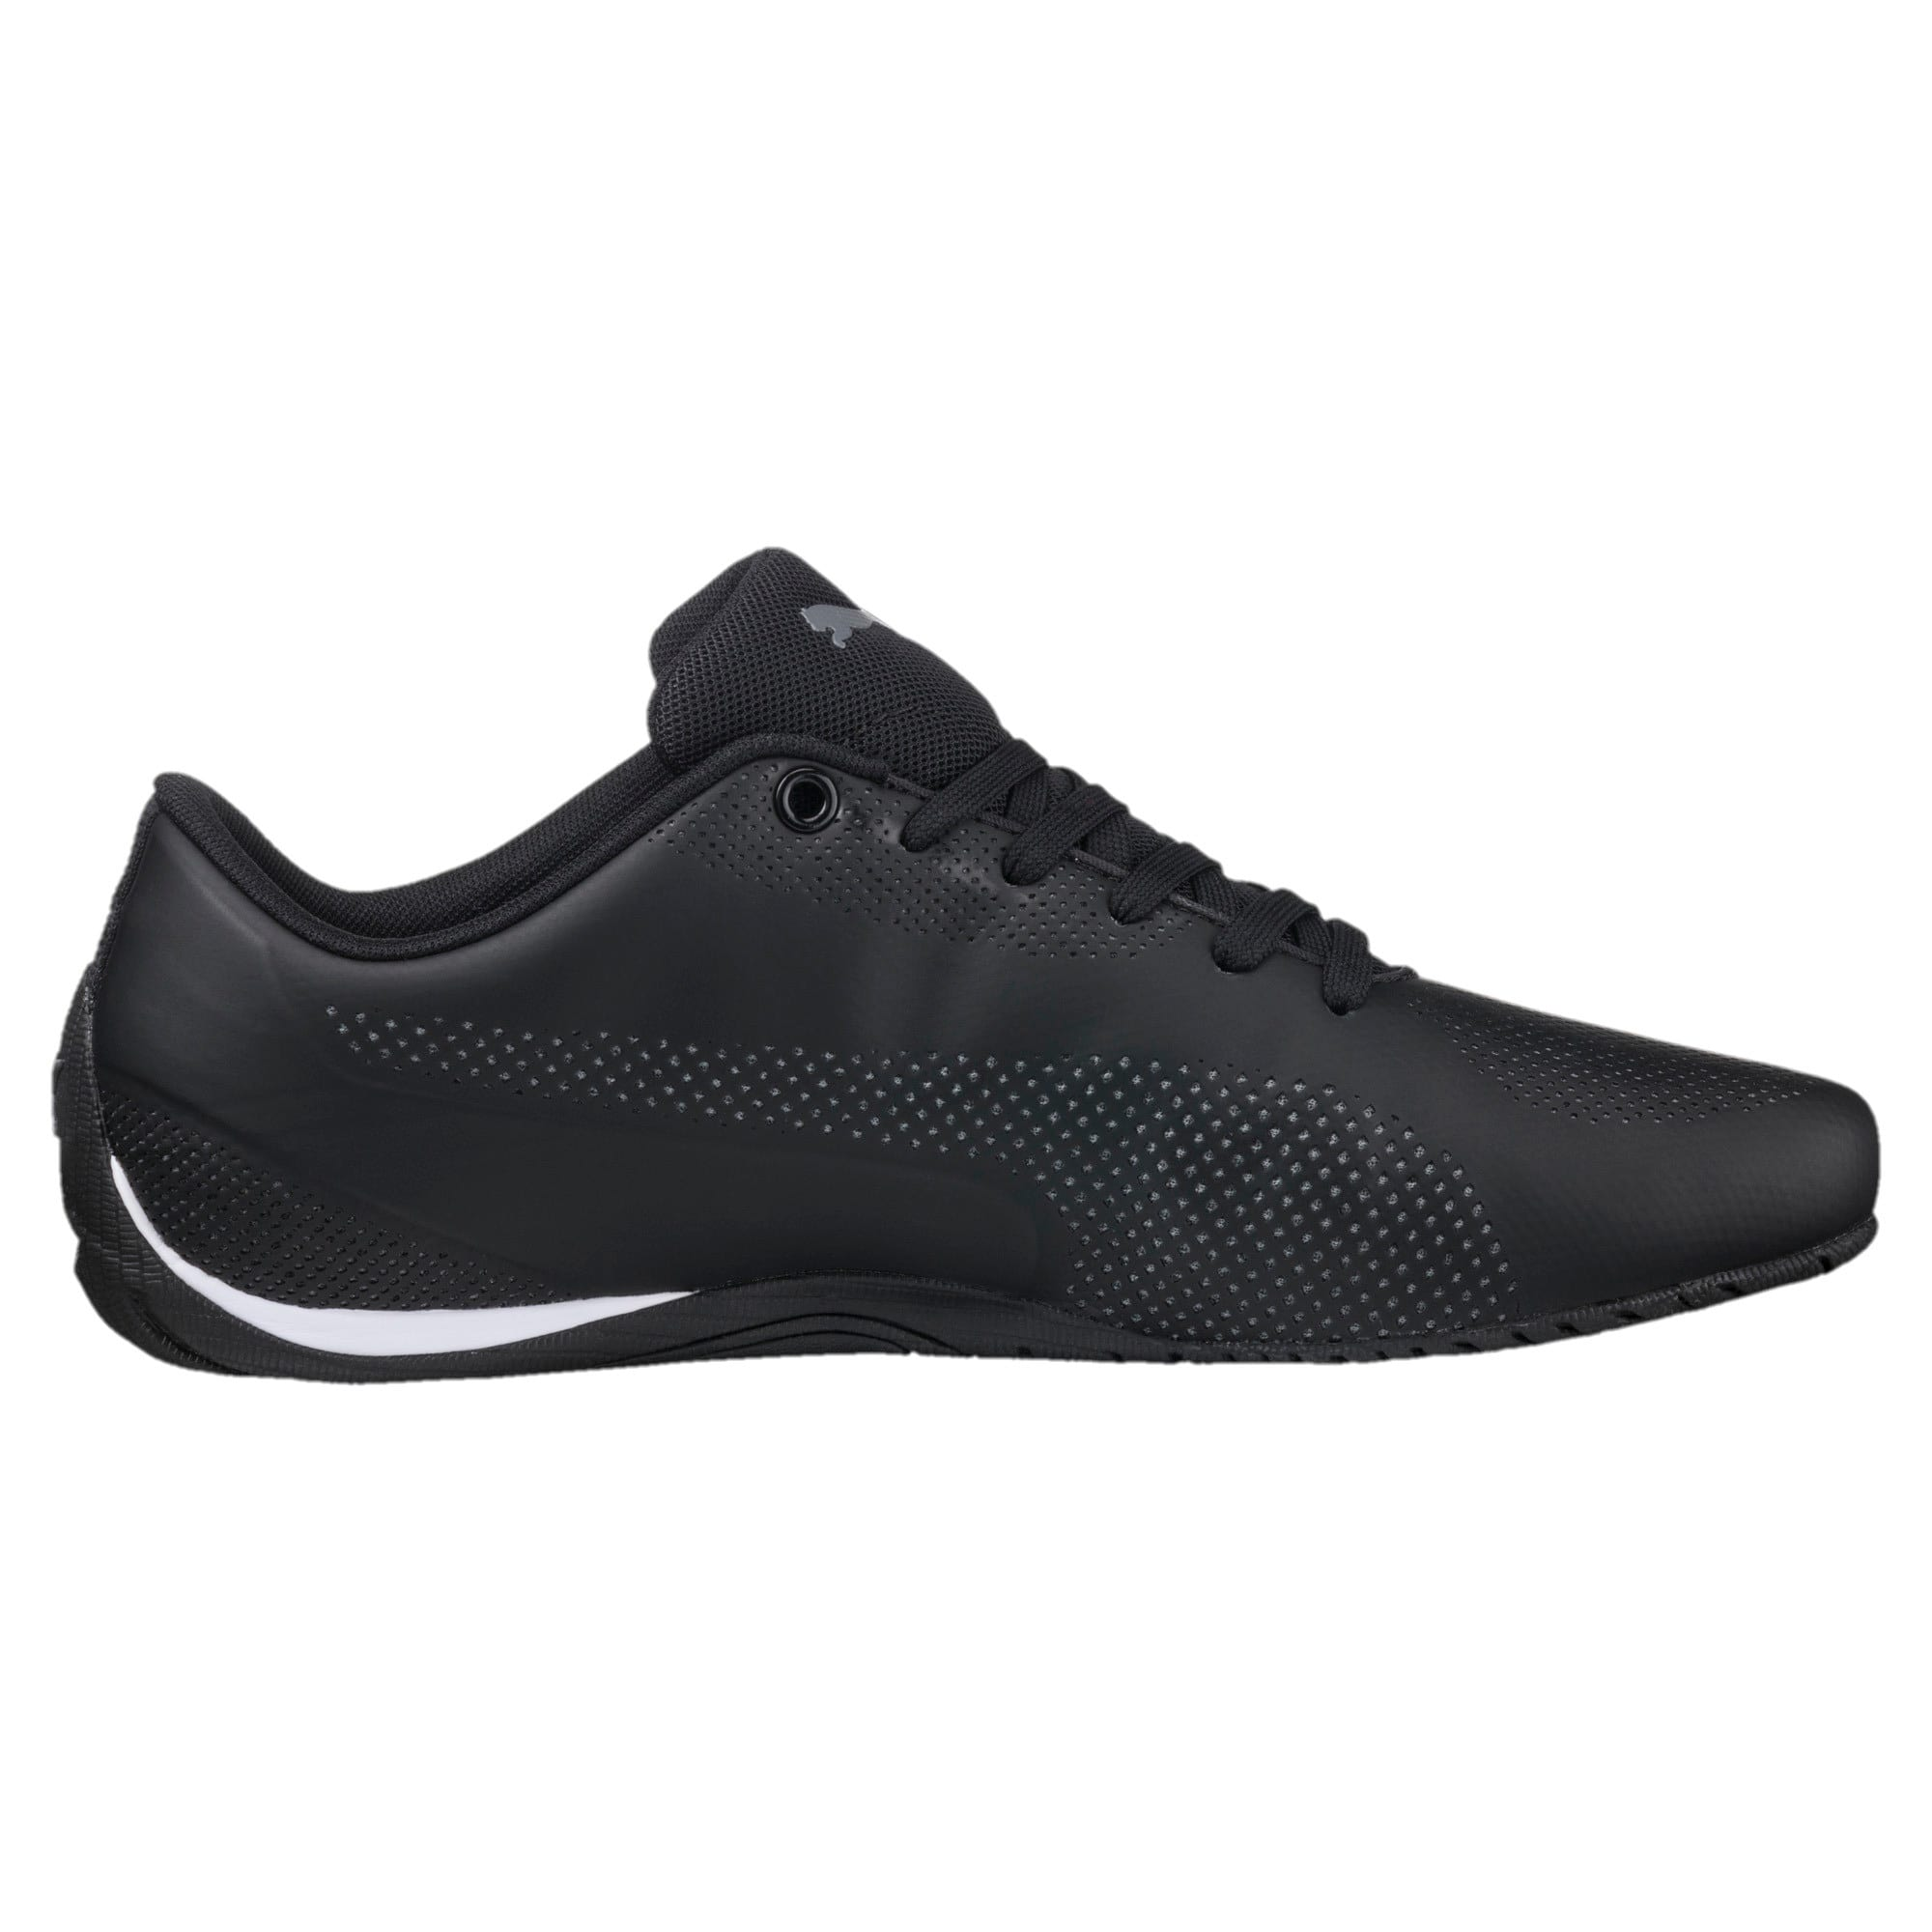 Thumbnail 4 of Drift Cat 5 Ultra Trainers, Puma Black-QUIET SHADE, medium-IND